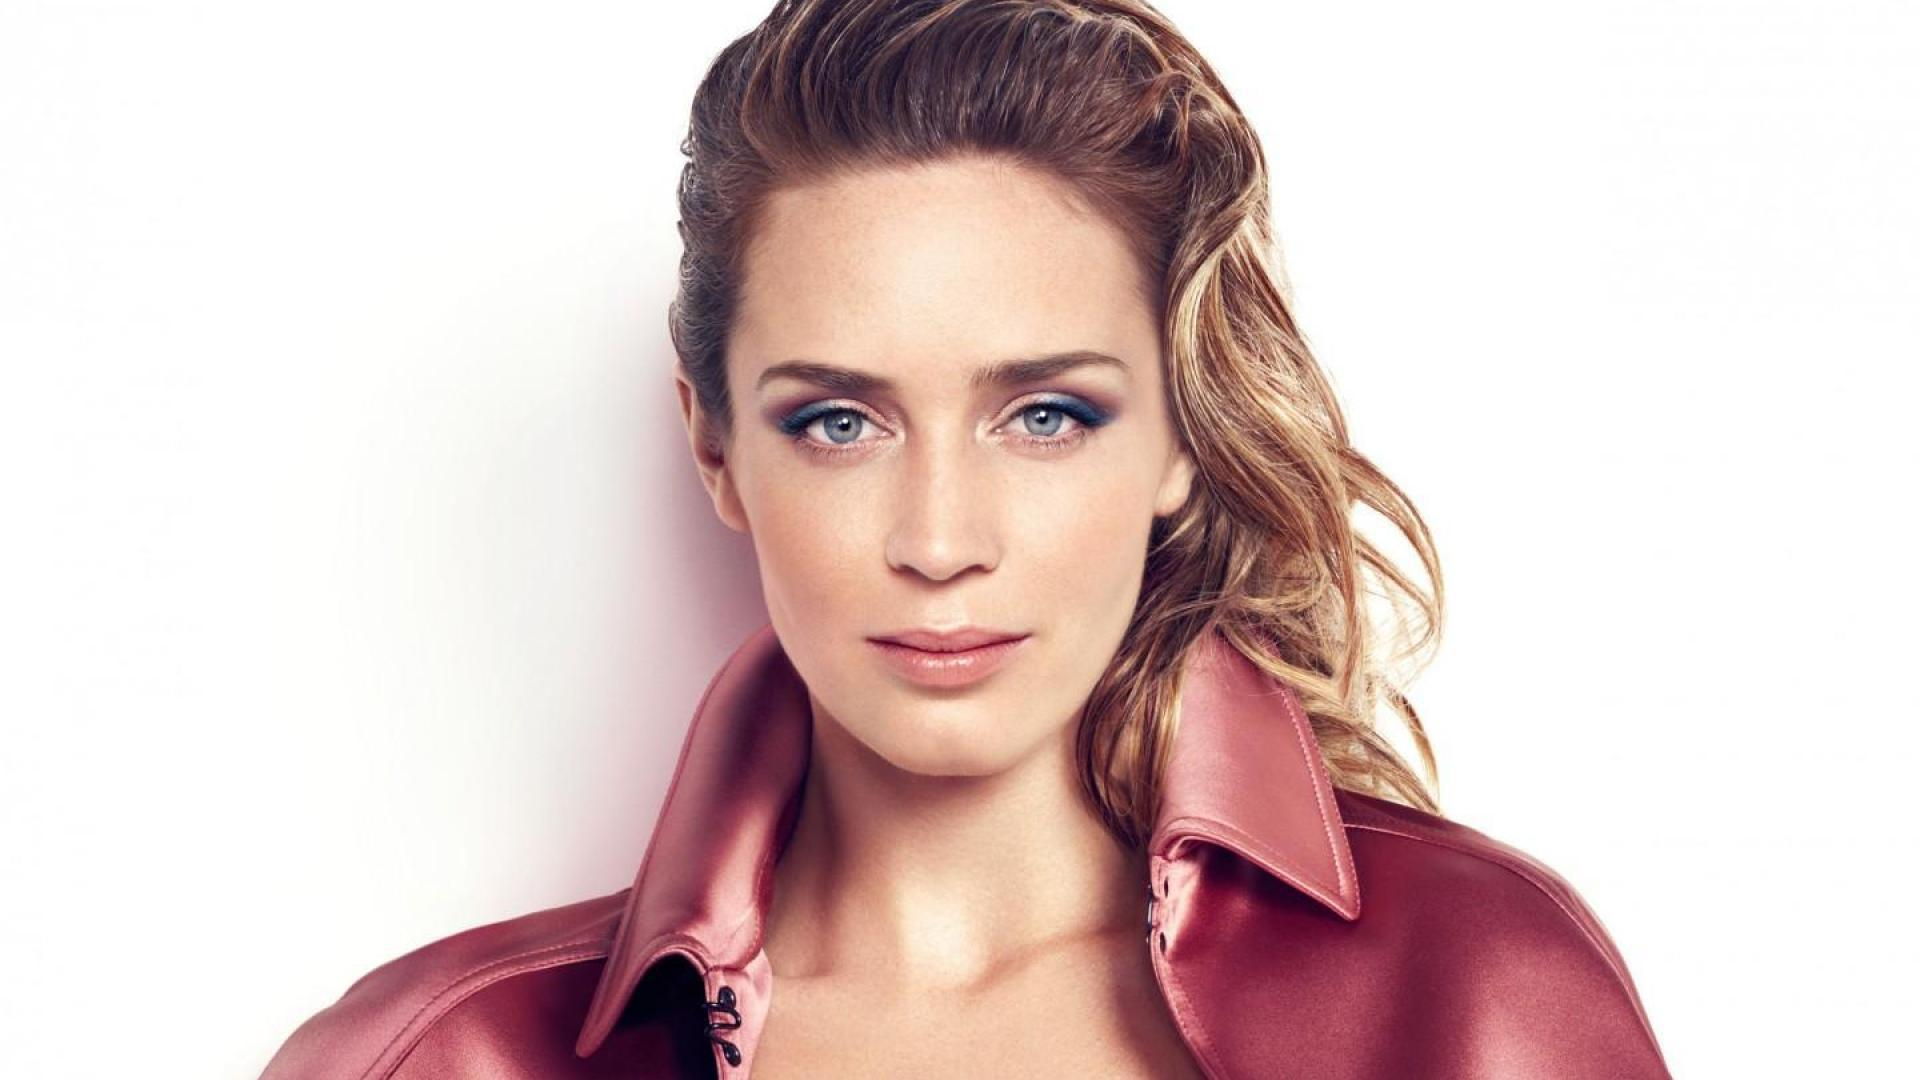 emily blunt wallpapers images photos pictures backgrounds